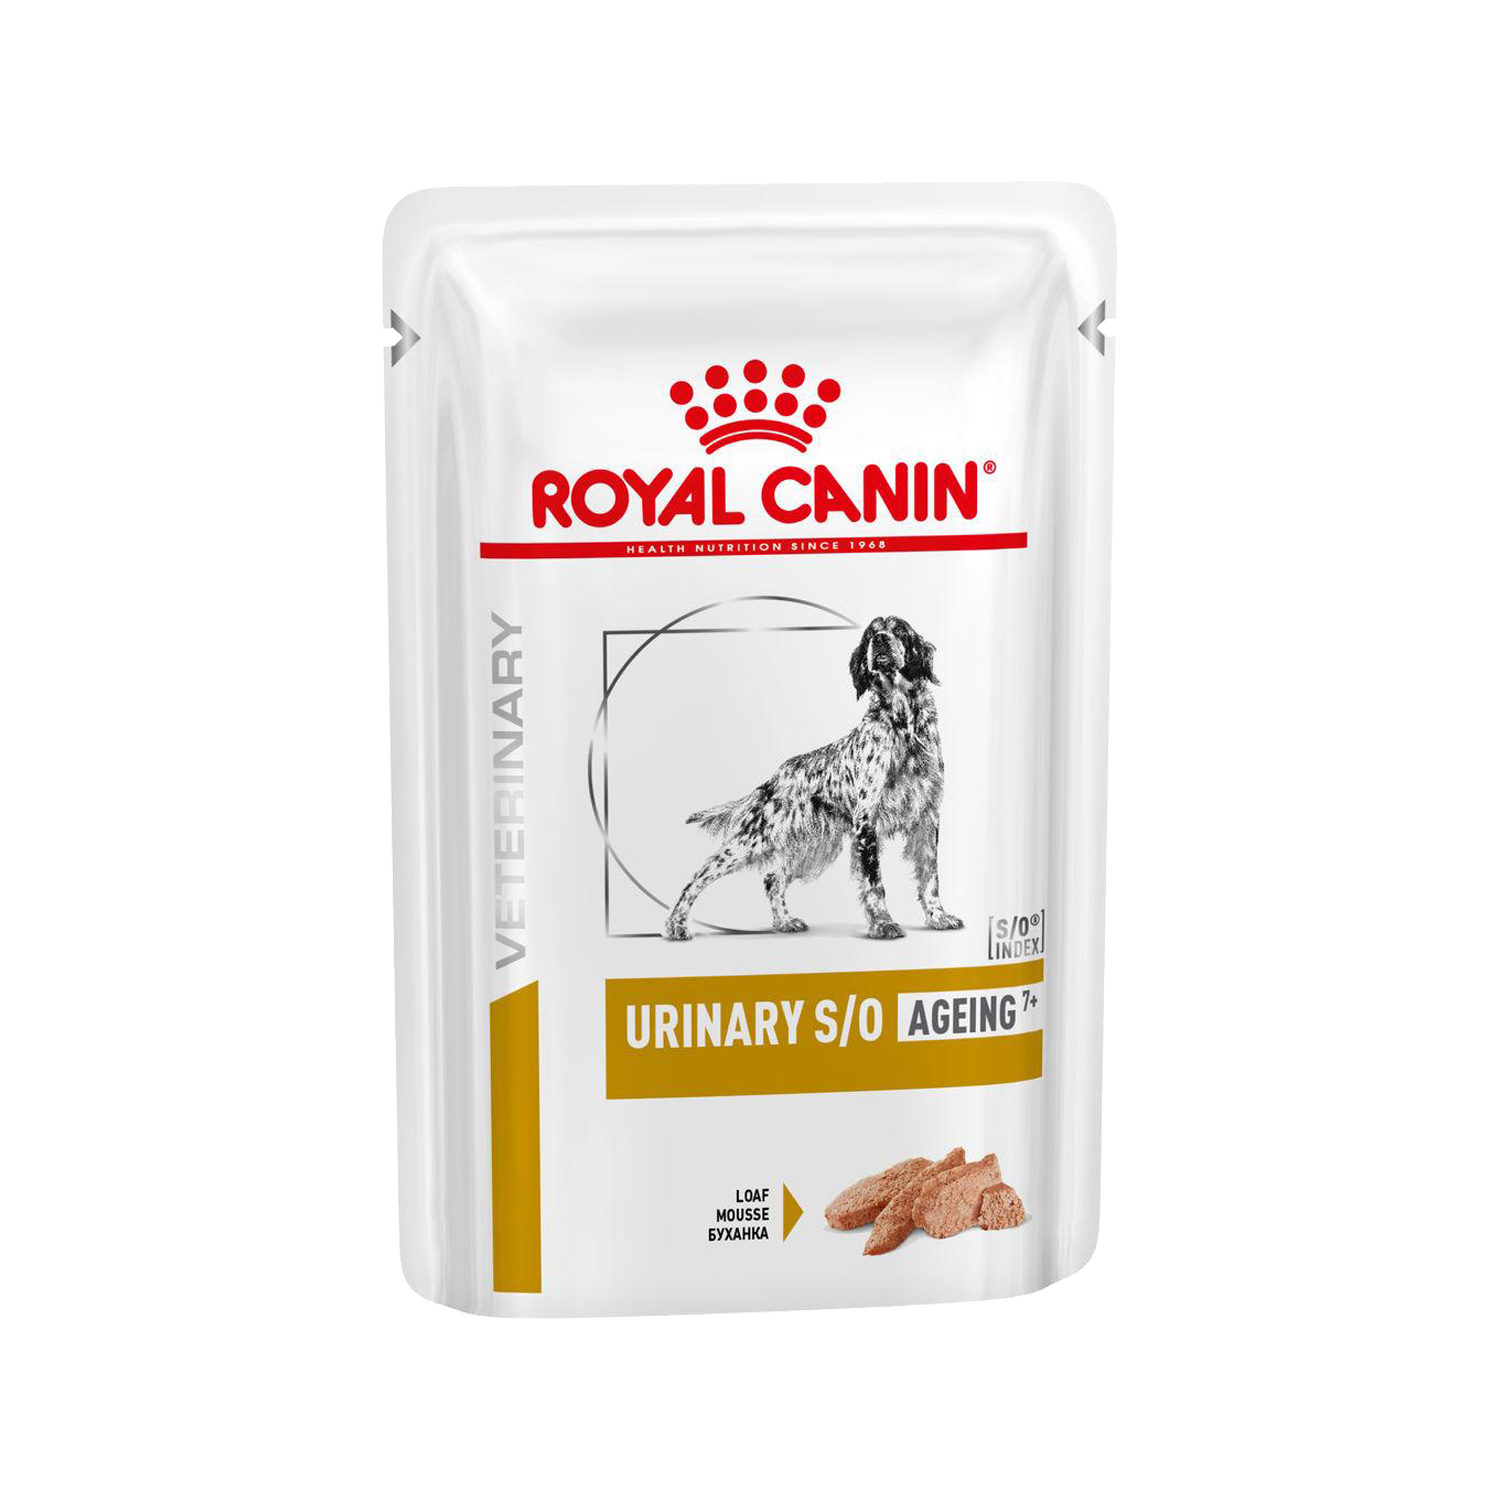 Royal Canin S/O Urinary Ageing 7+ Hundefutter - Frischebeutel